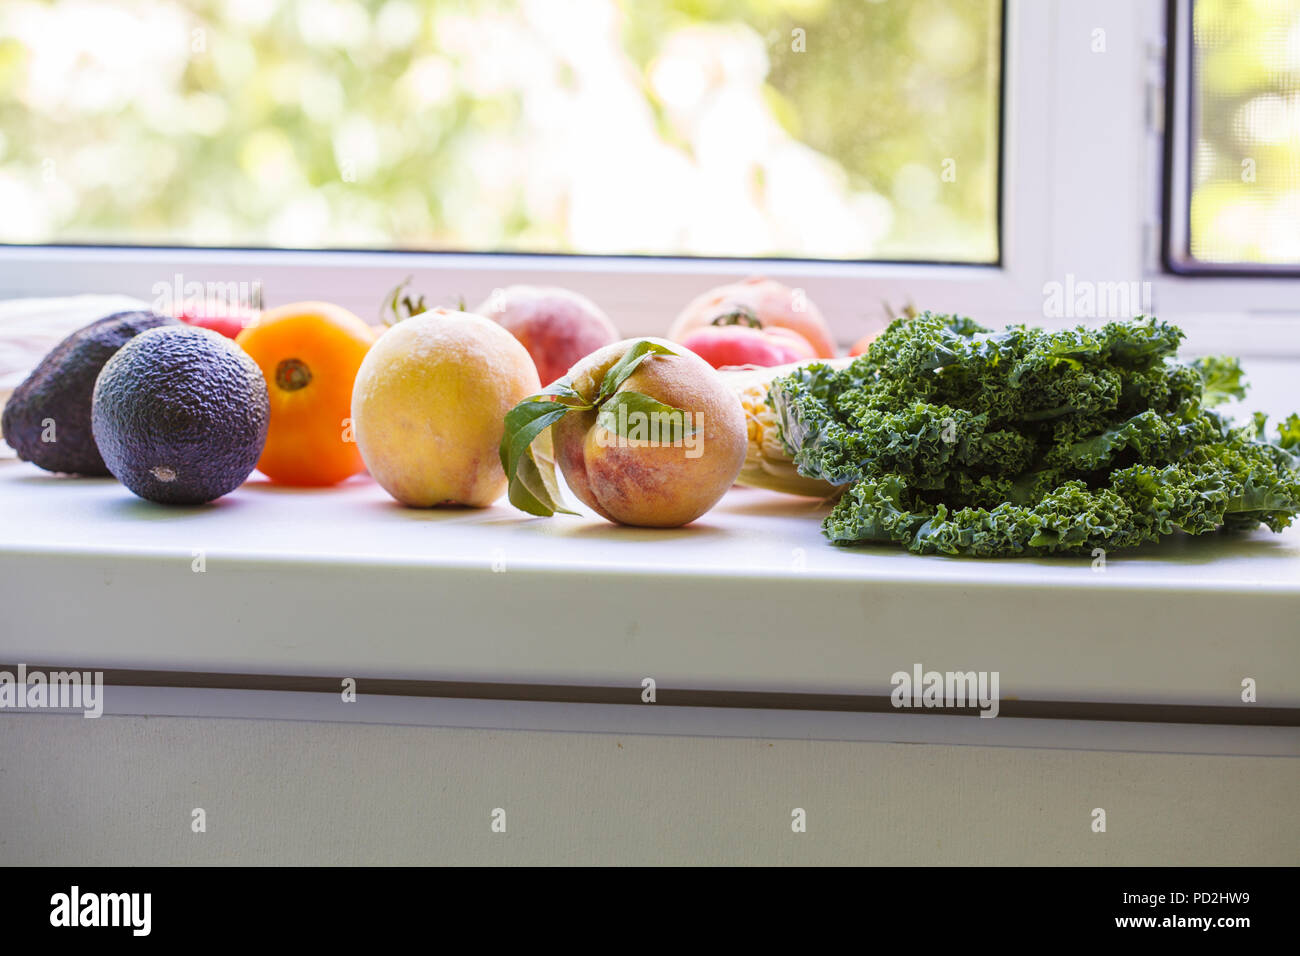 Seasonal summer fruits and vegetables on the windowsill. Healthy clean eating concept. - Stock Image